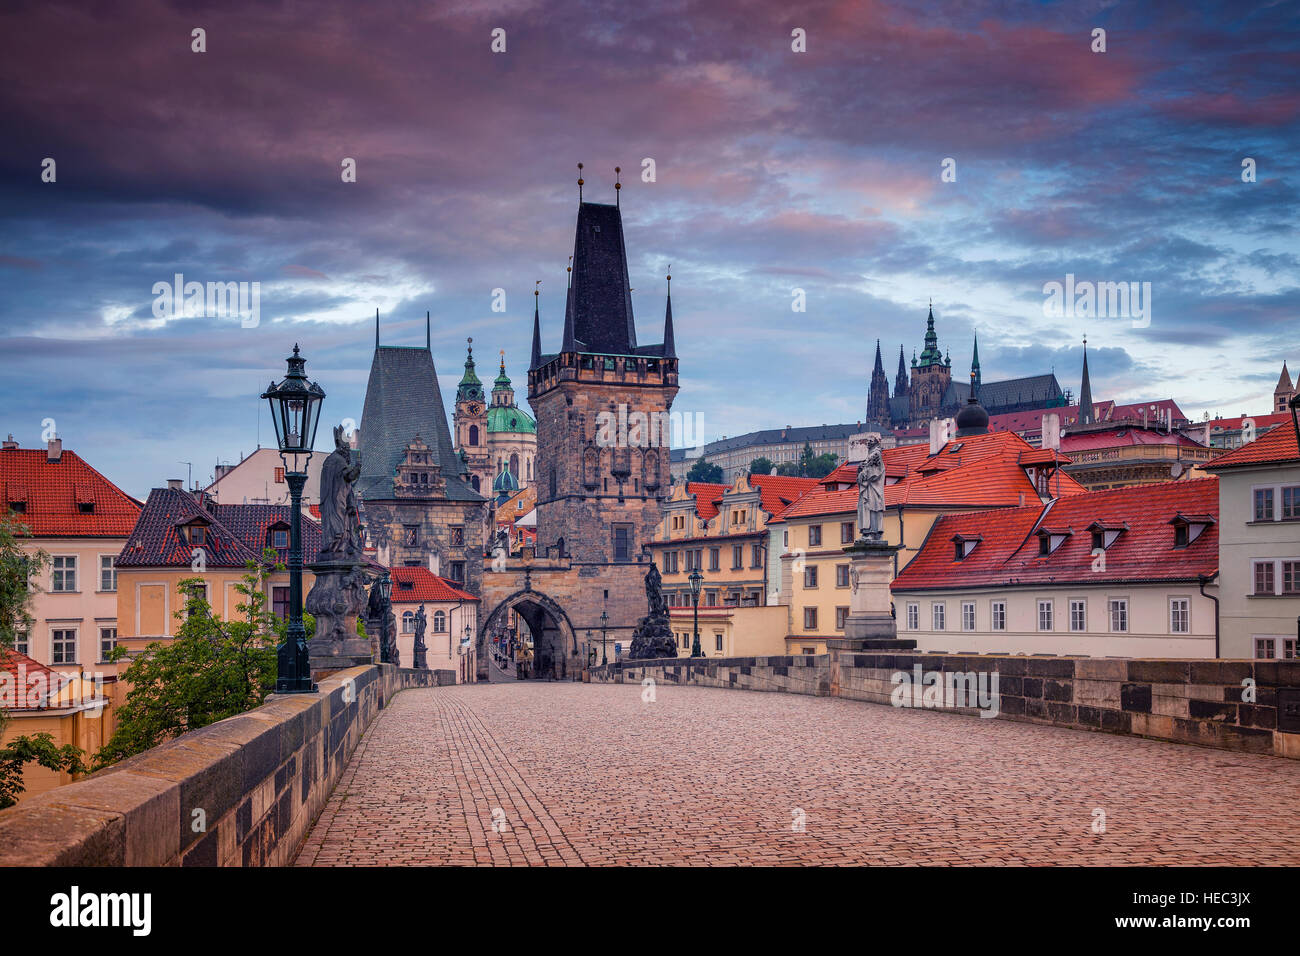 Charles Bridge, Prague. Cityscape image of Charles Bridge in Prague, Czech Republic during sunrise. - Stock Image